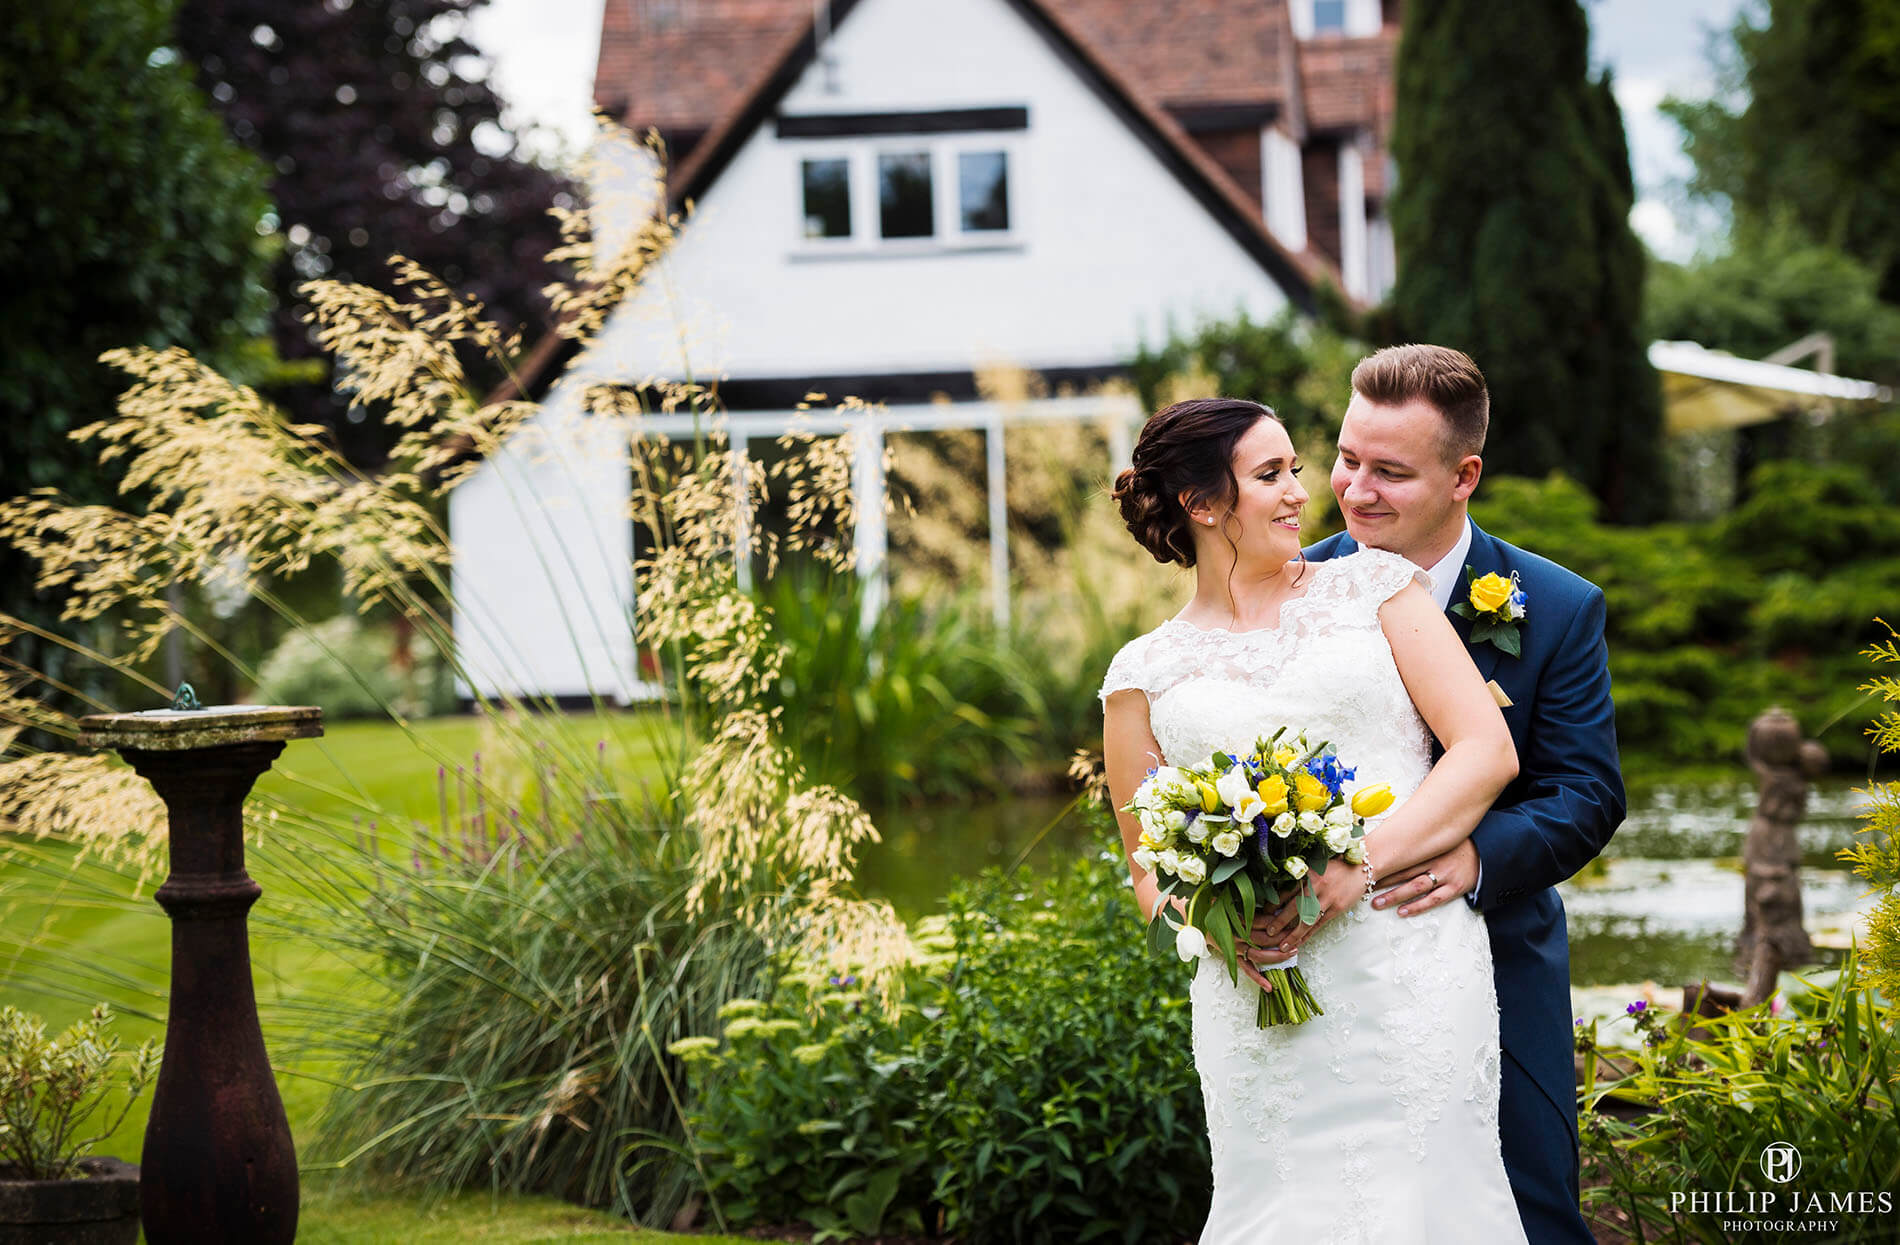 Recommended Wedding Venues | Wedding Photography Birmingham